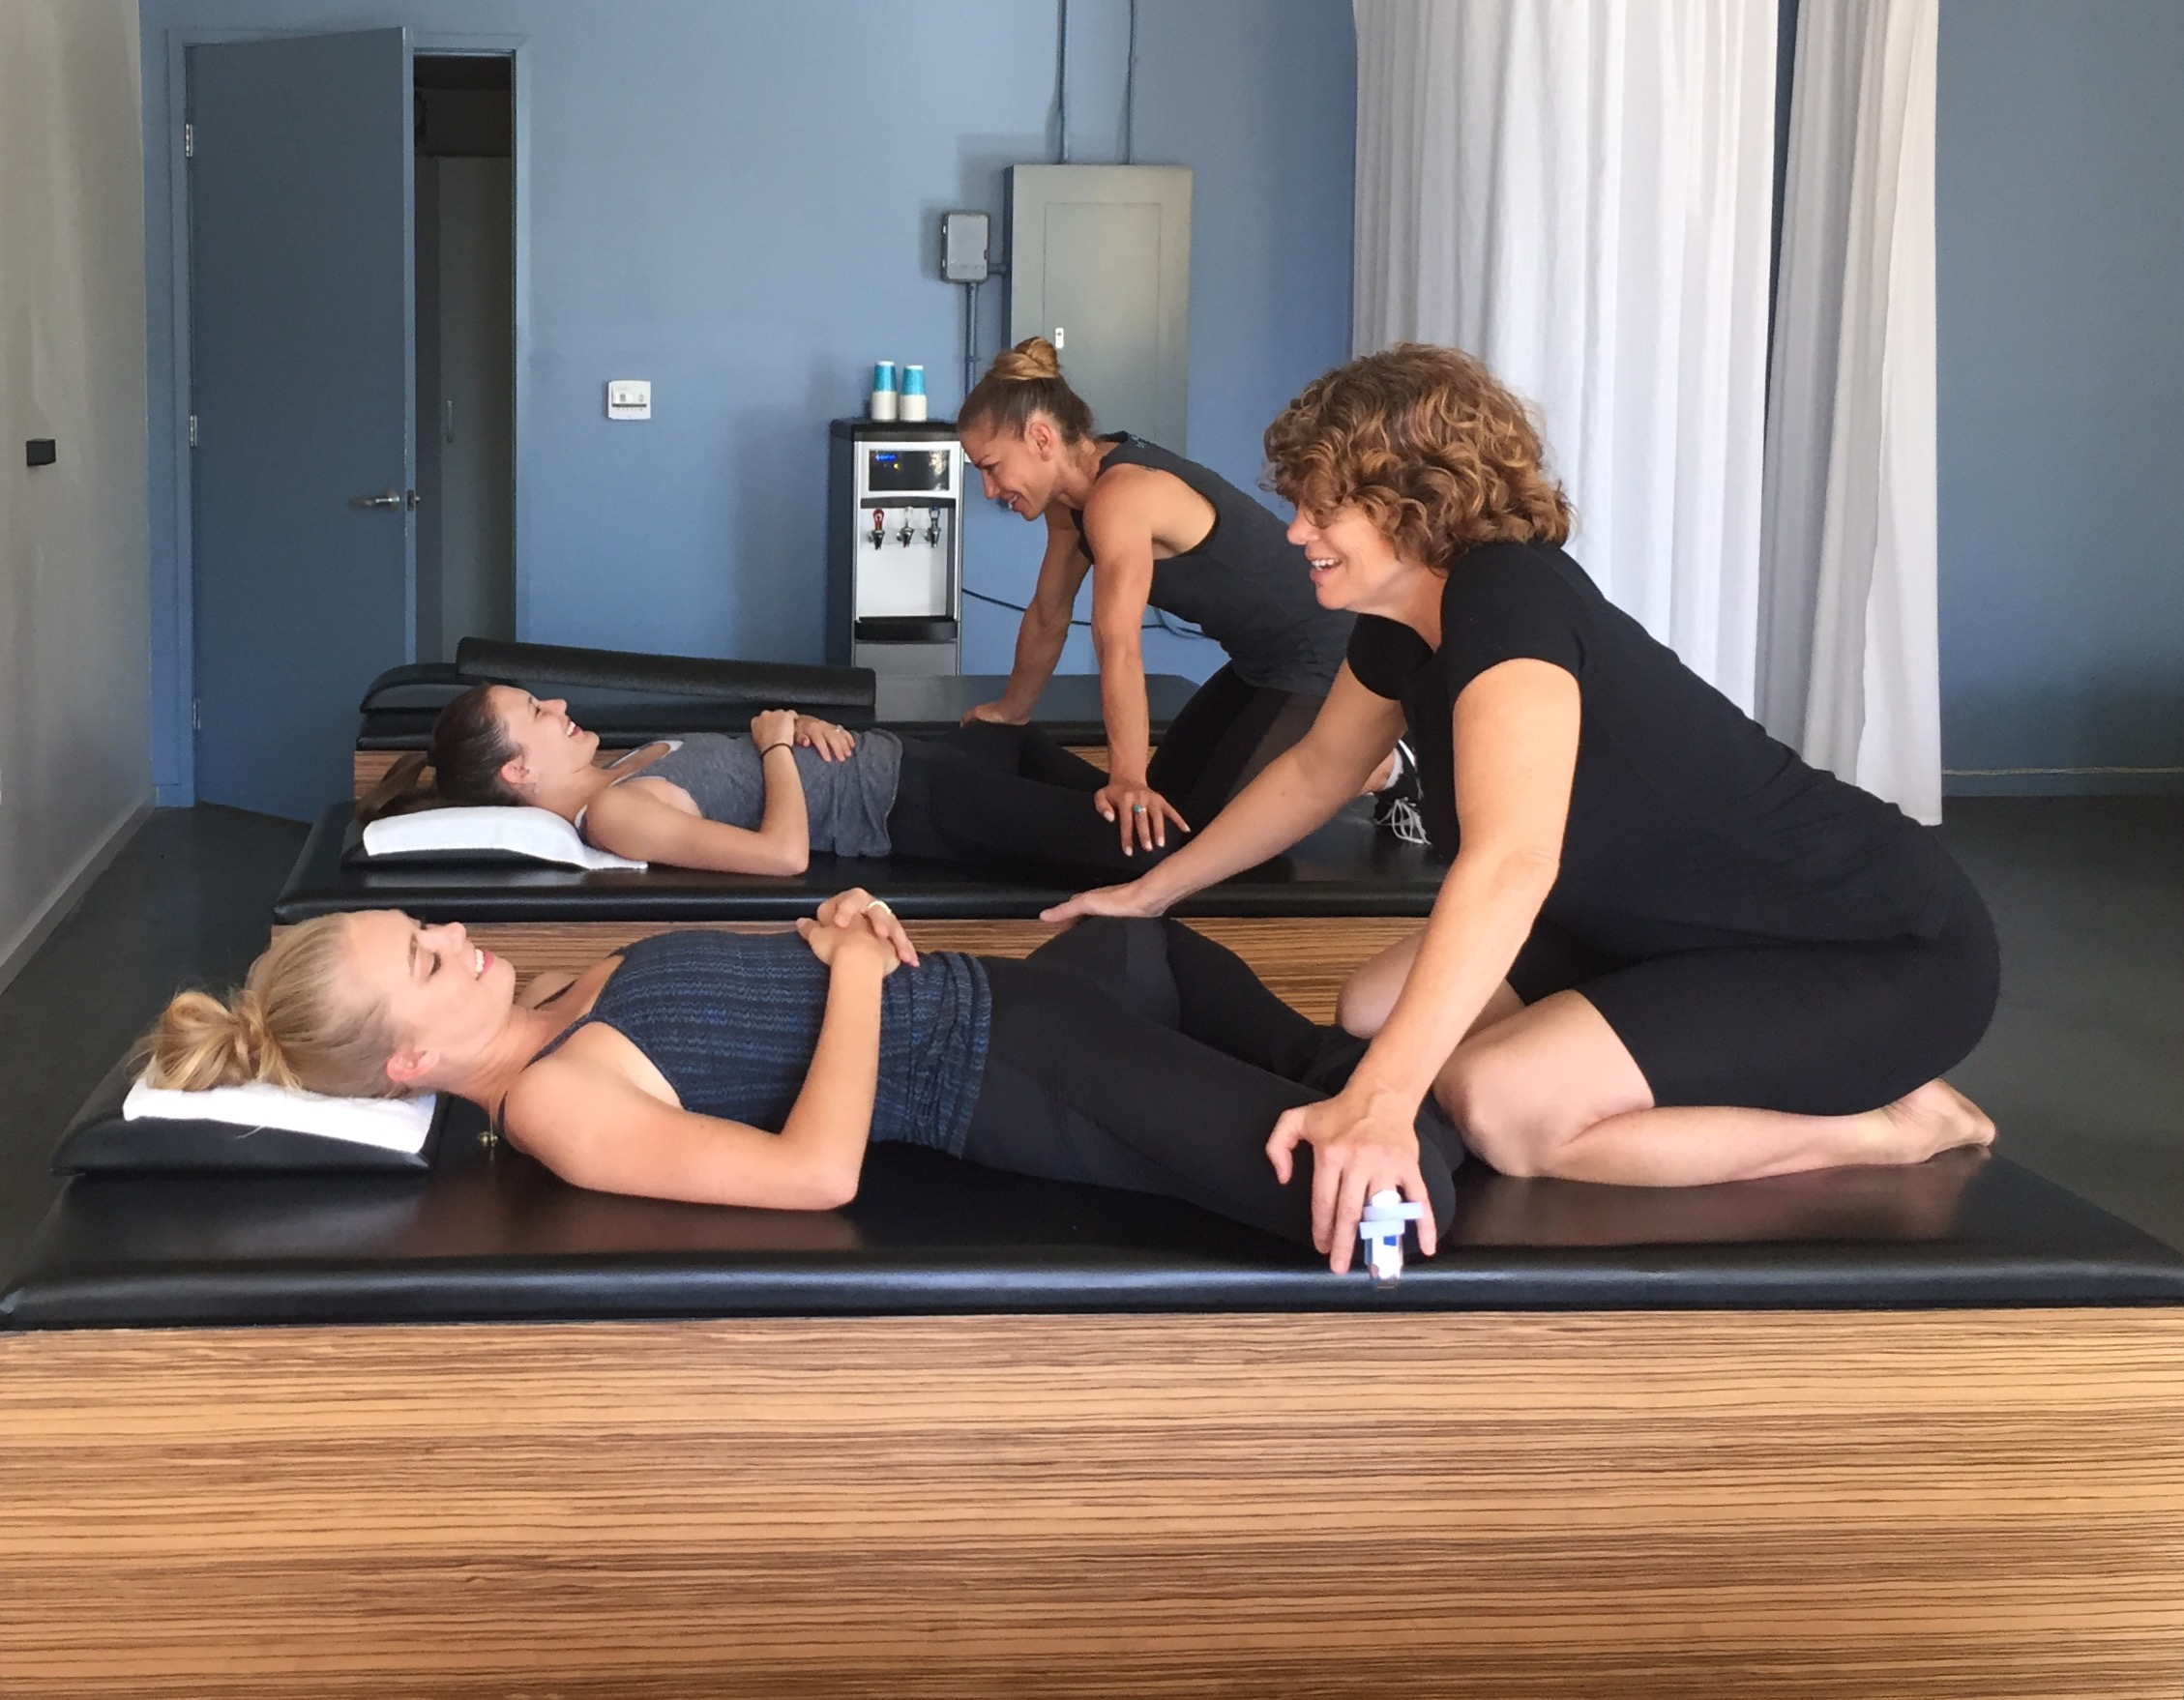 Allyssa Bross, a principal dancer with the  Los Angeles Ballet  on her 7th season, knows how important it is to stretch. Recently, she tried out Venice Beach's new  Stretch Lab , and she loved it.